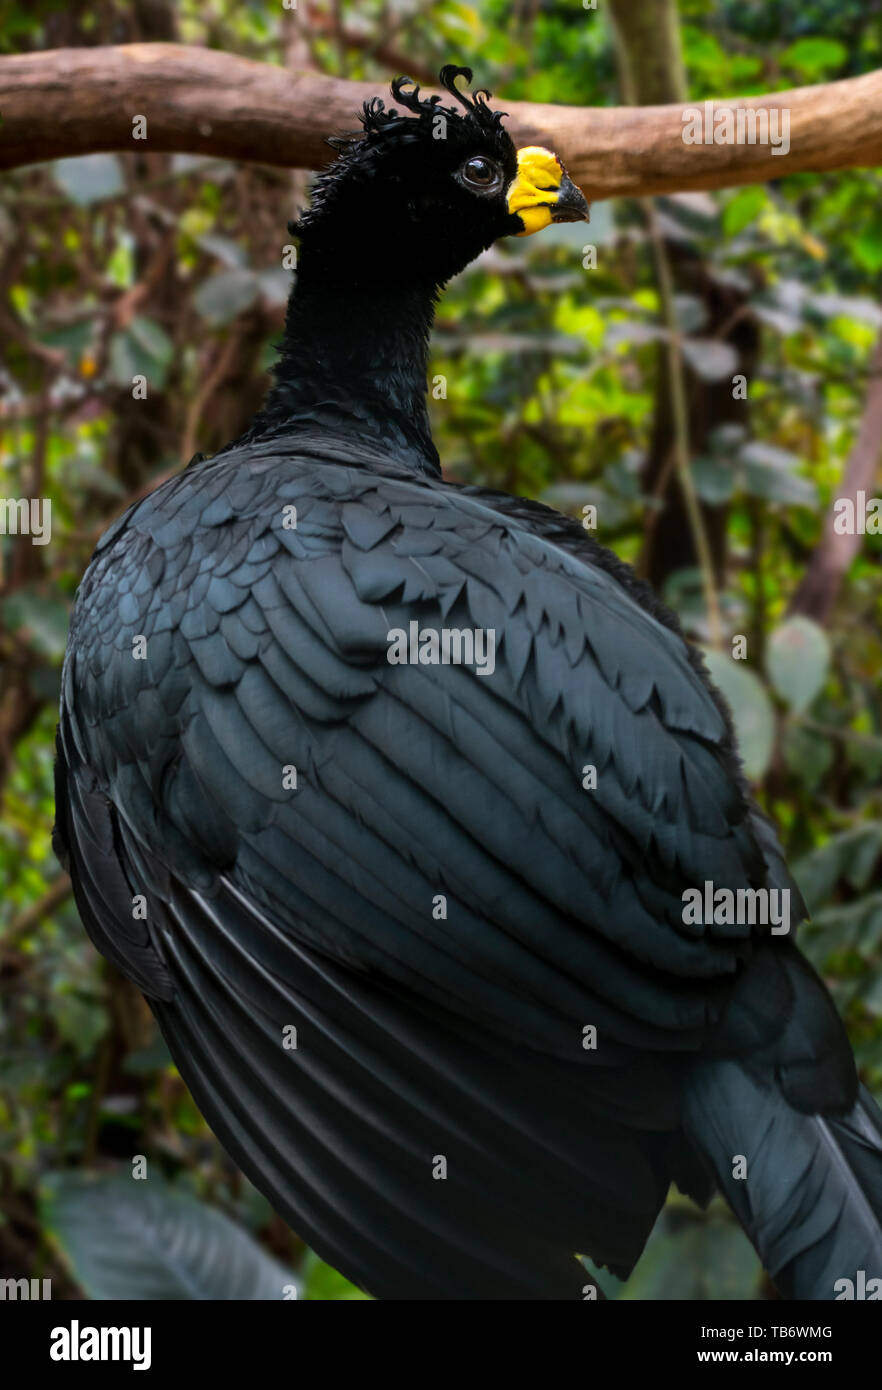 Yellow-knobbed curassow (Crax daubentoni) male foraging in forest, native to Colombia and Venezuela, South America - Stock Image